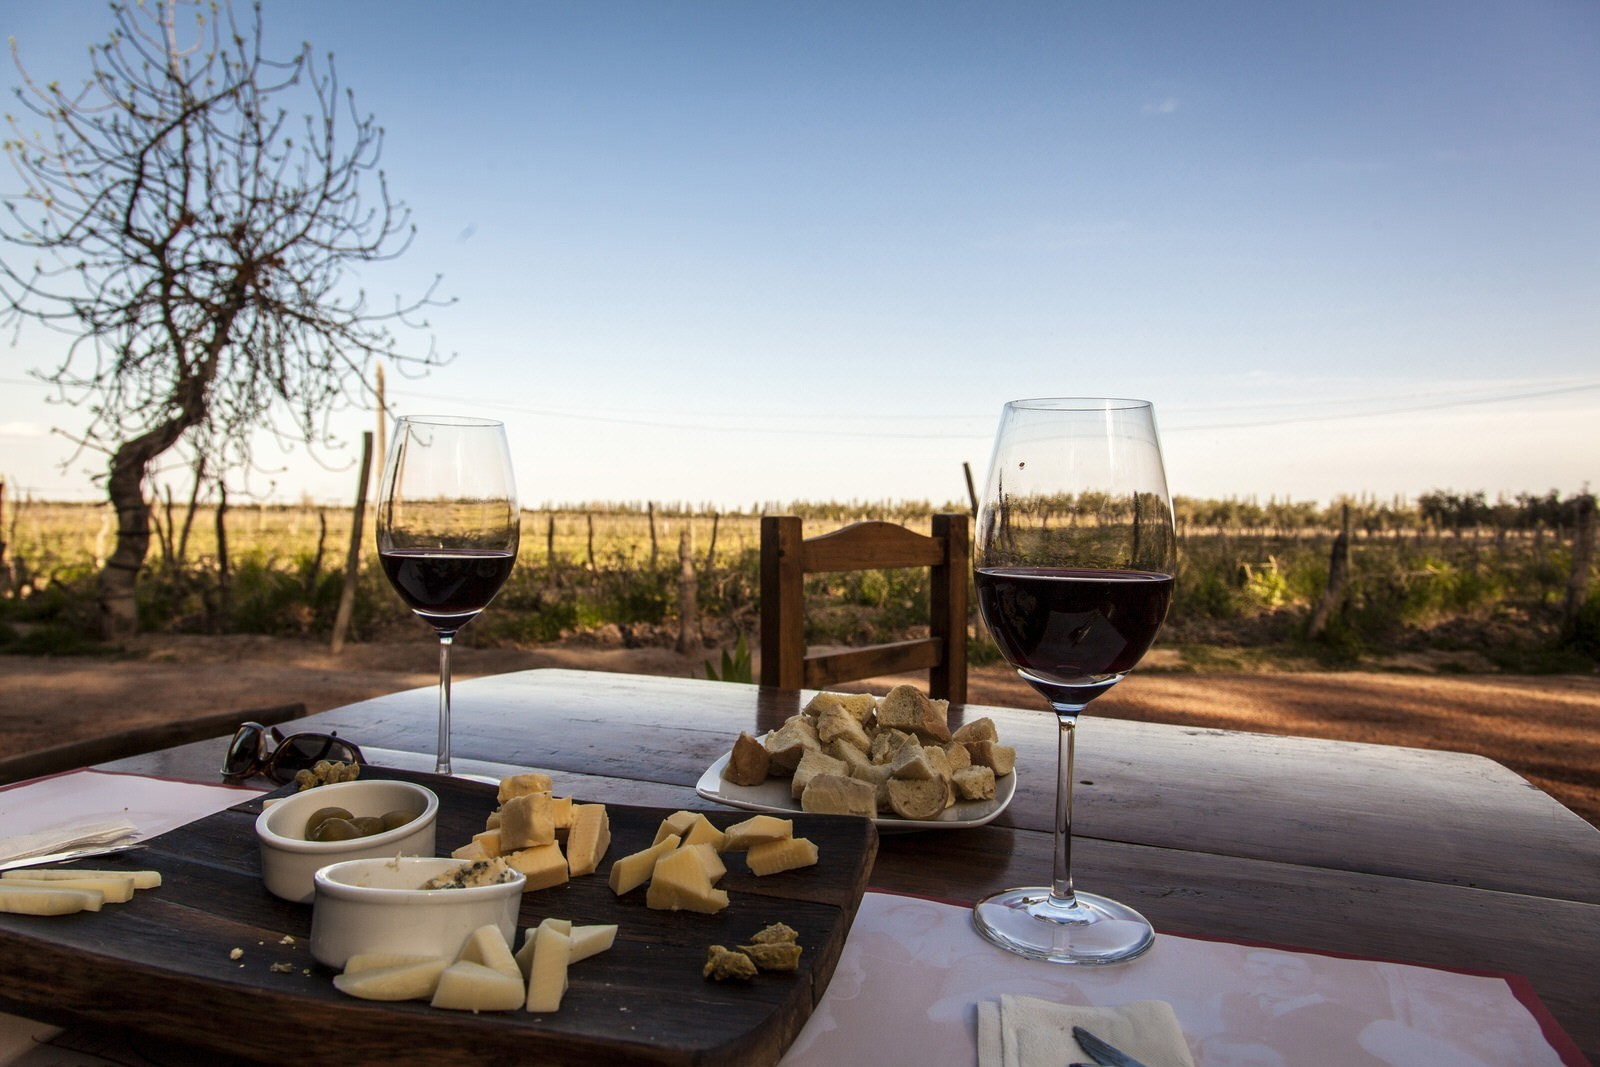 Wine tasting on a shoestring in South America